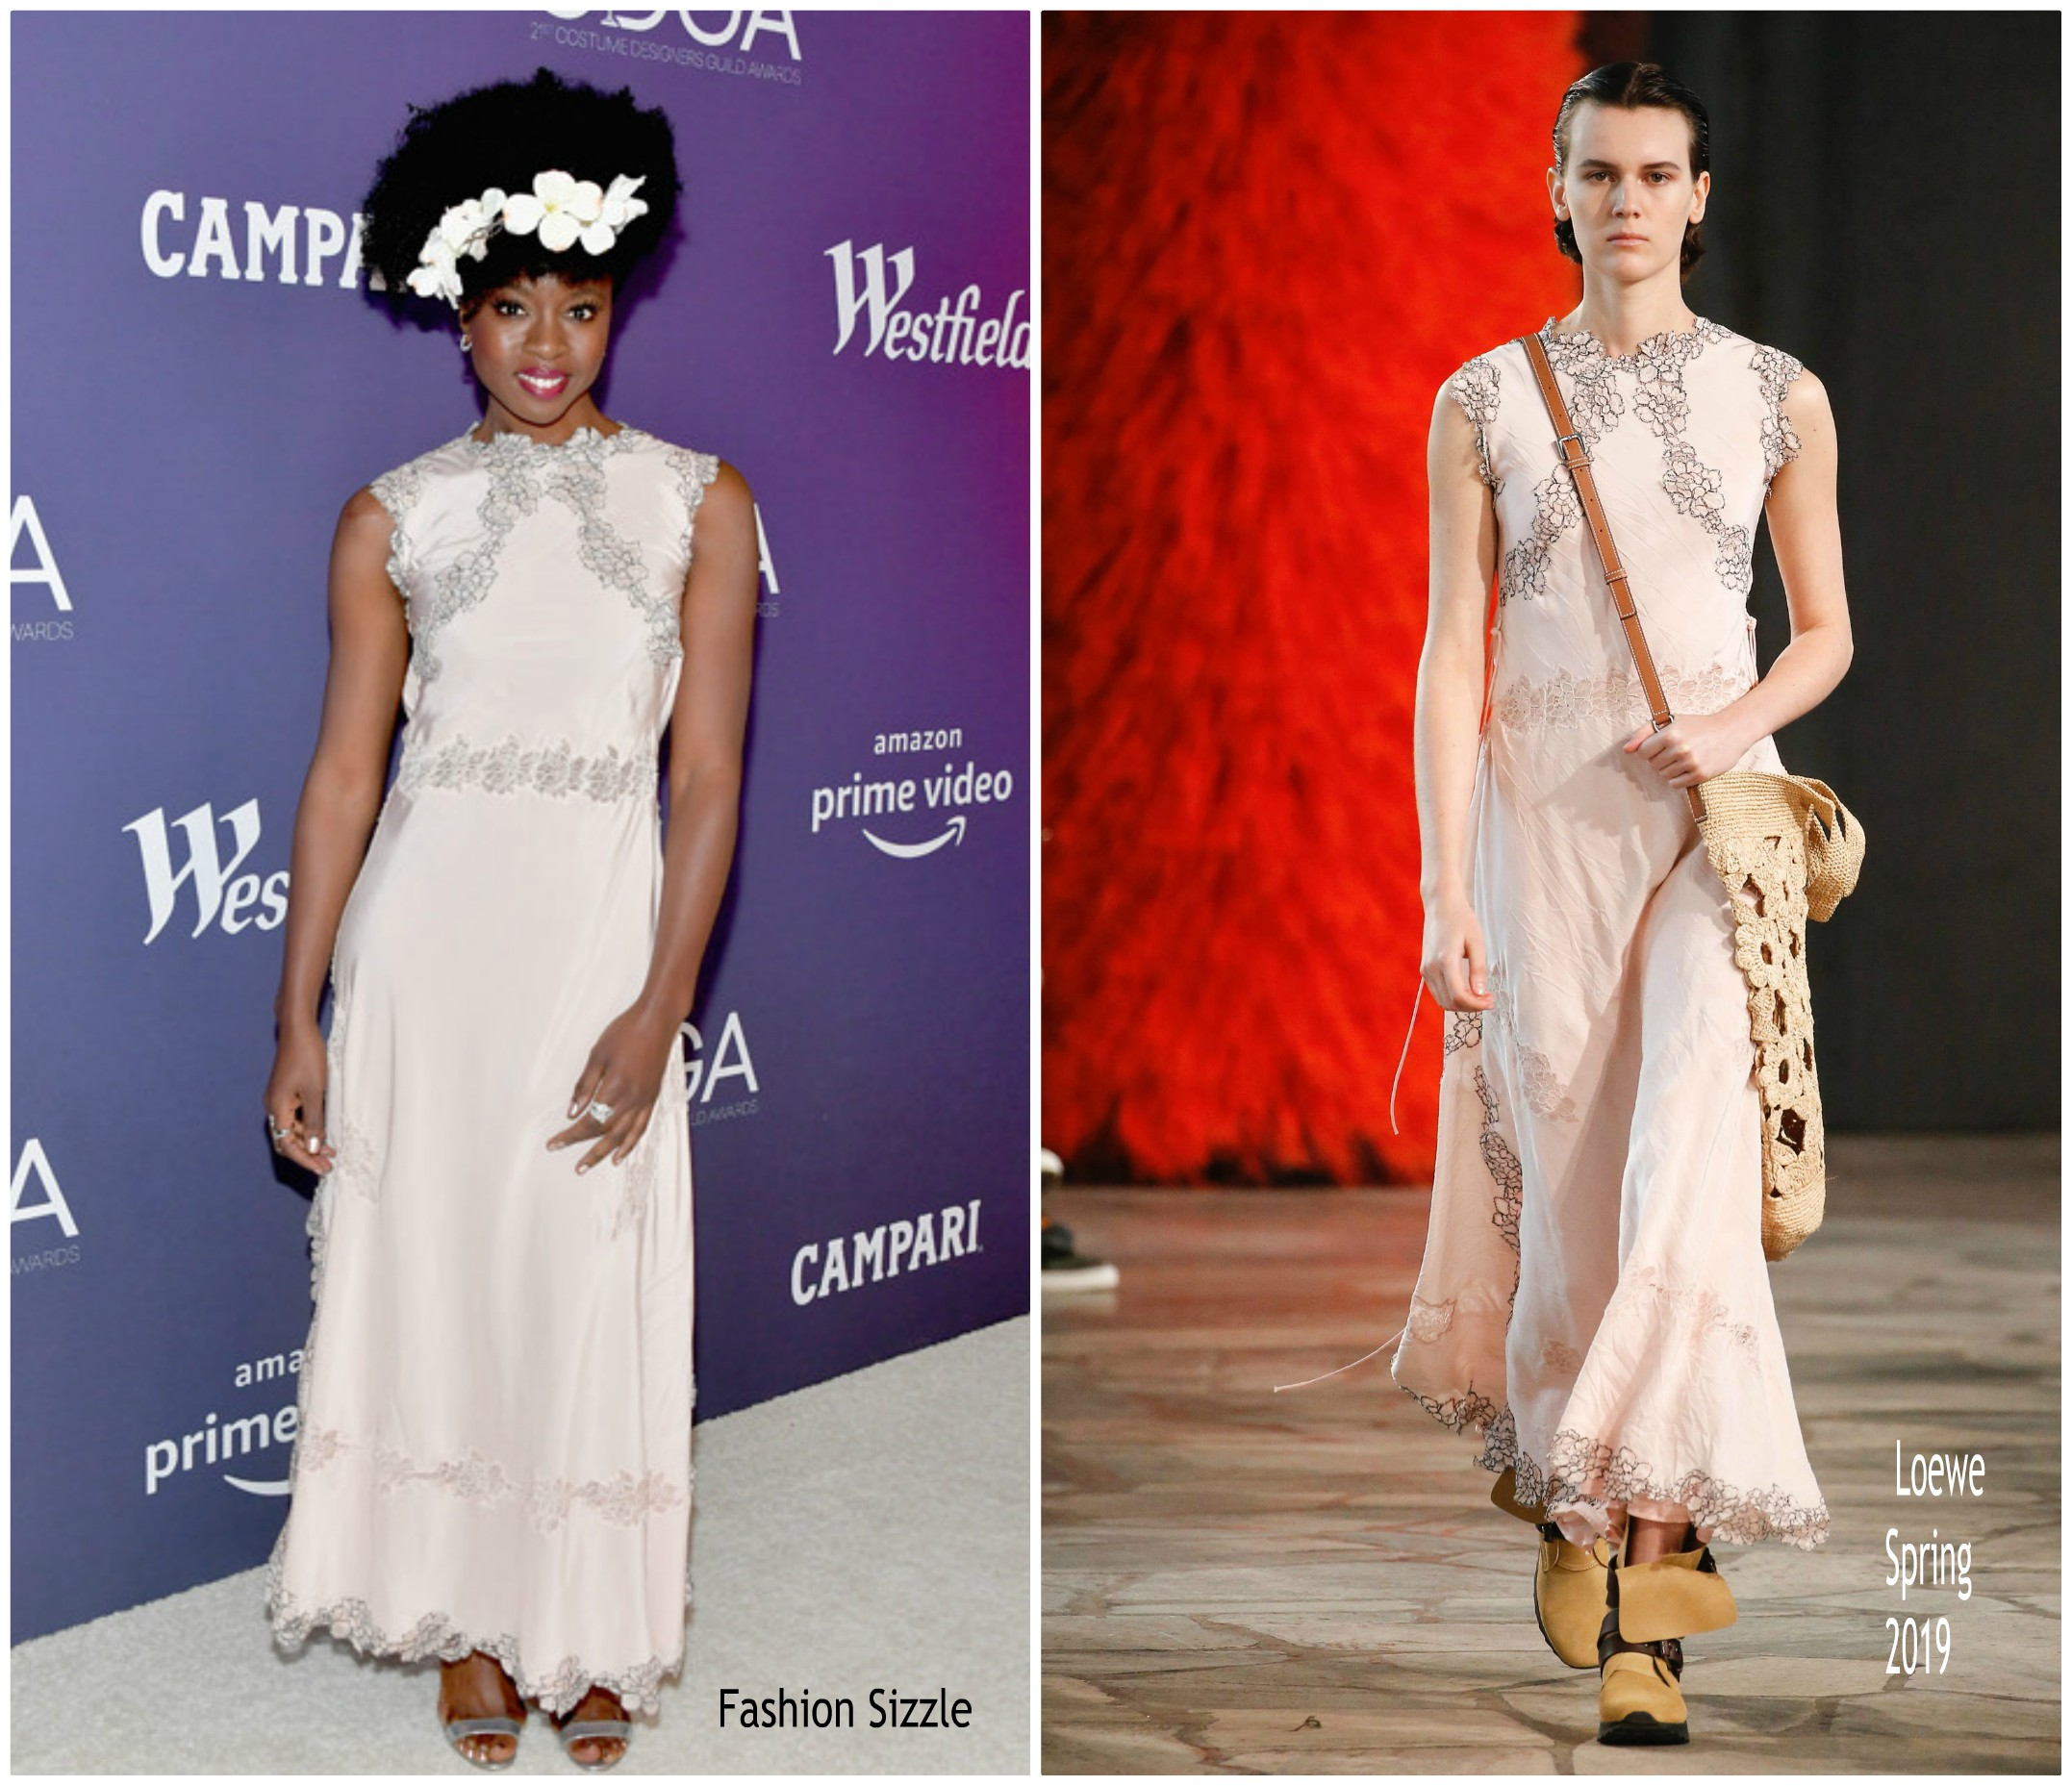 danai-gurira-in-loewe-2019-costume-designers-guild-awards